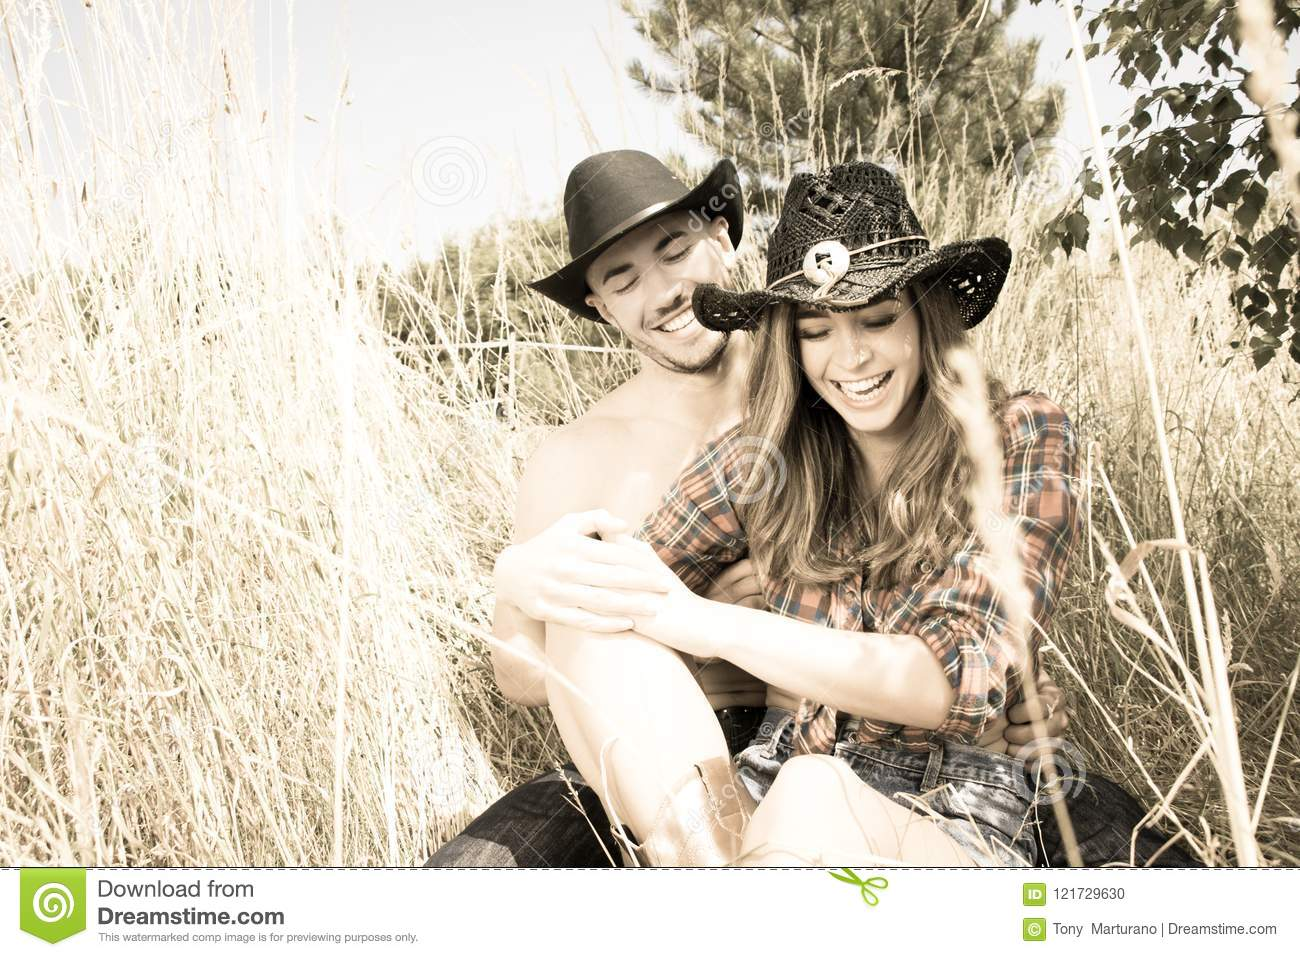 Cowboy And Cowgirl Couple Sitting In Grass Laughing As